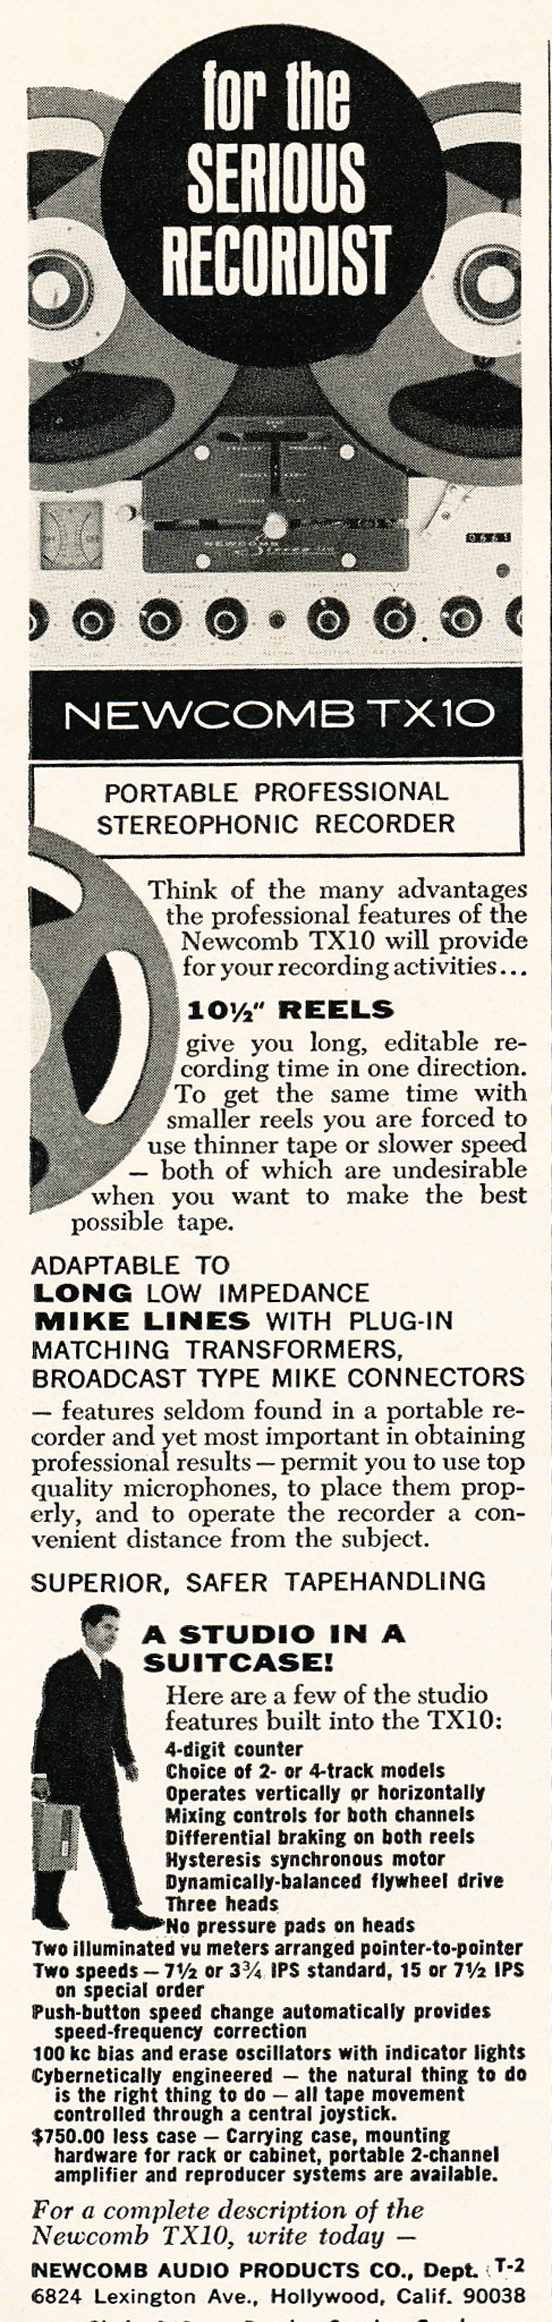 KLH Model 40 tape recorder photo  in the Reel2ReelTexas.com vintage recording collection